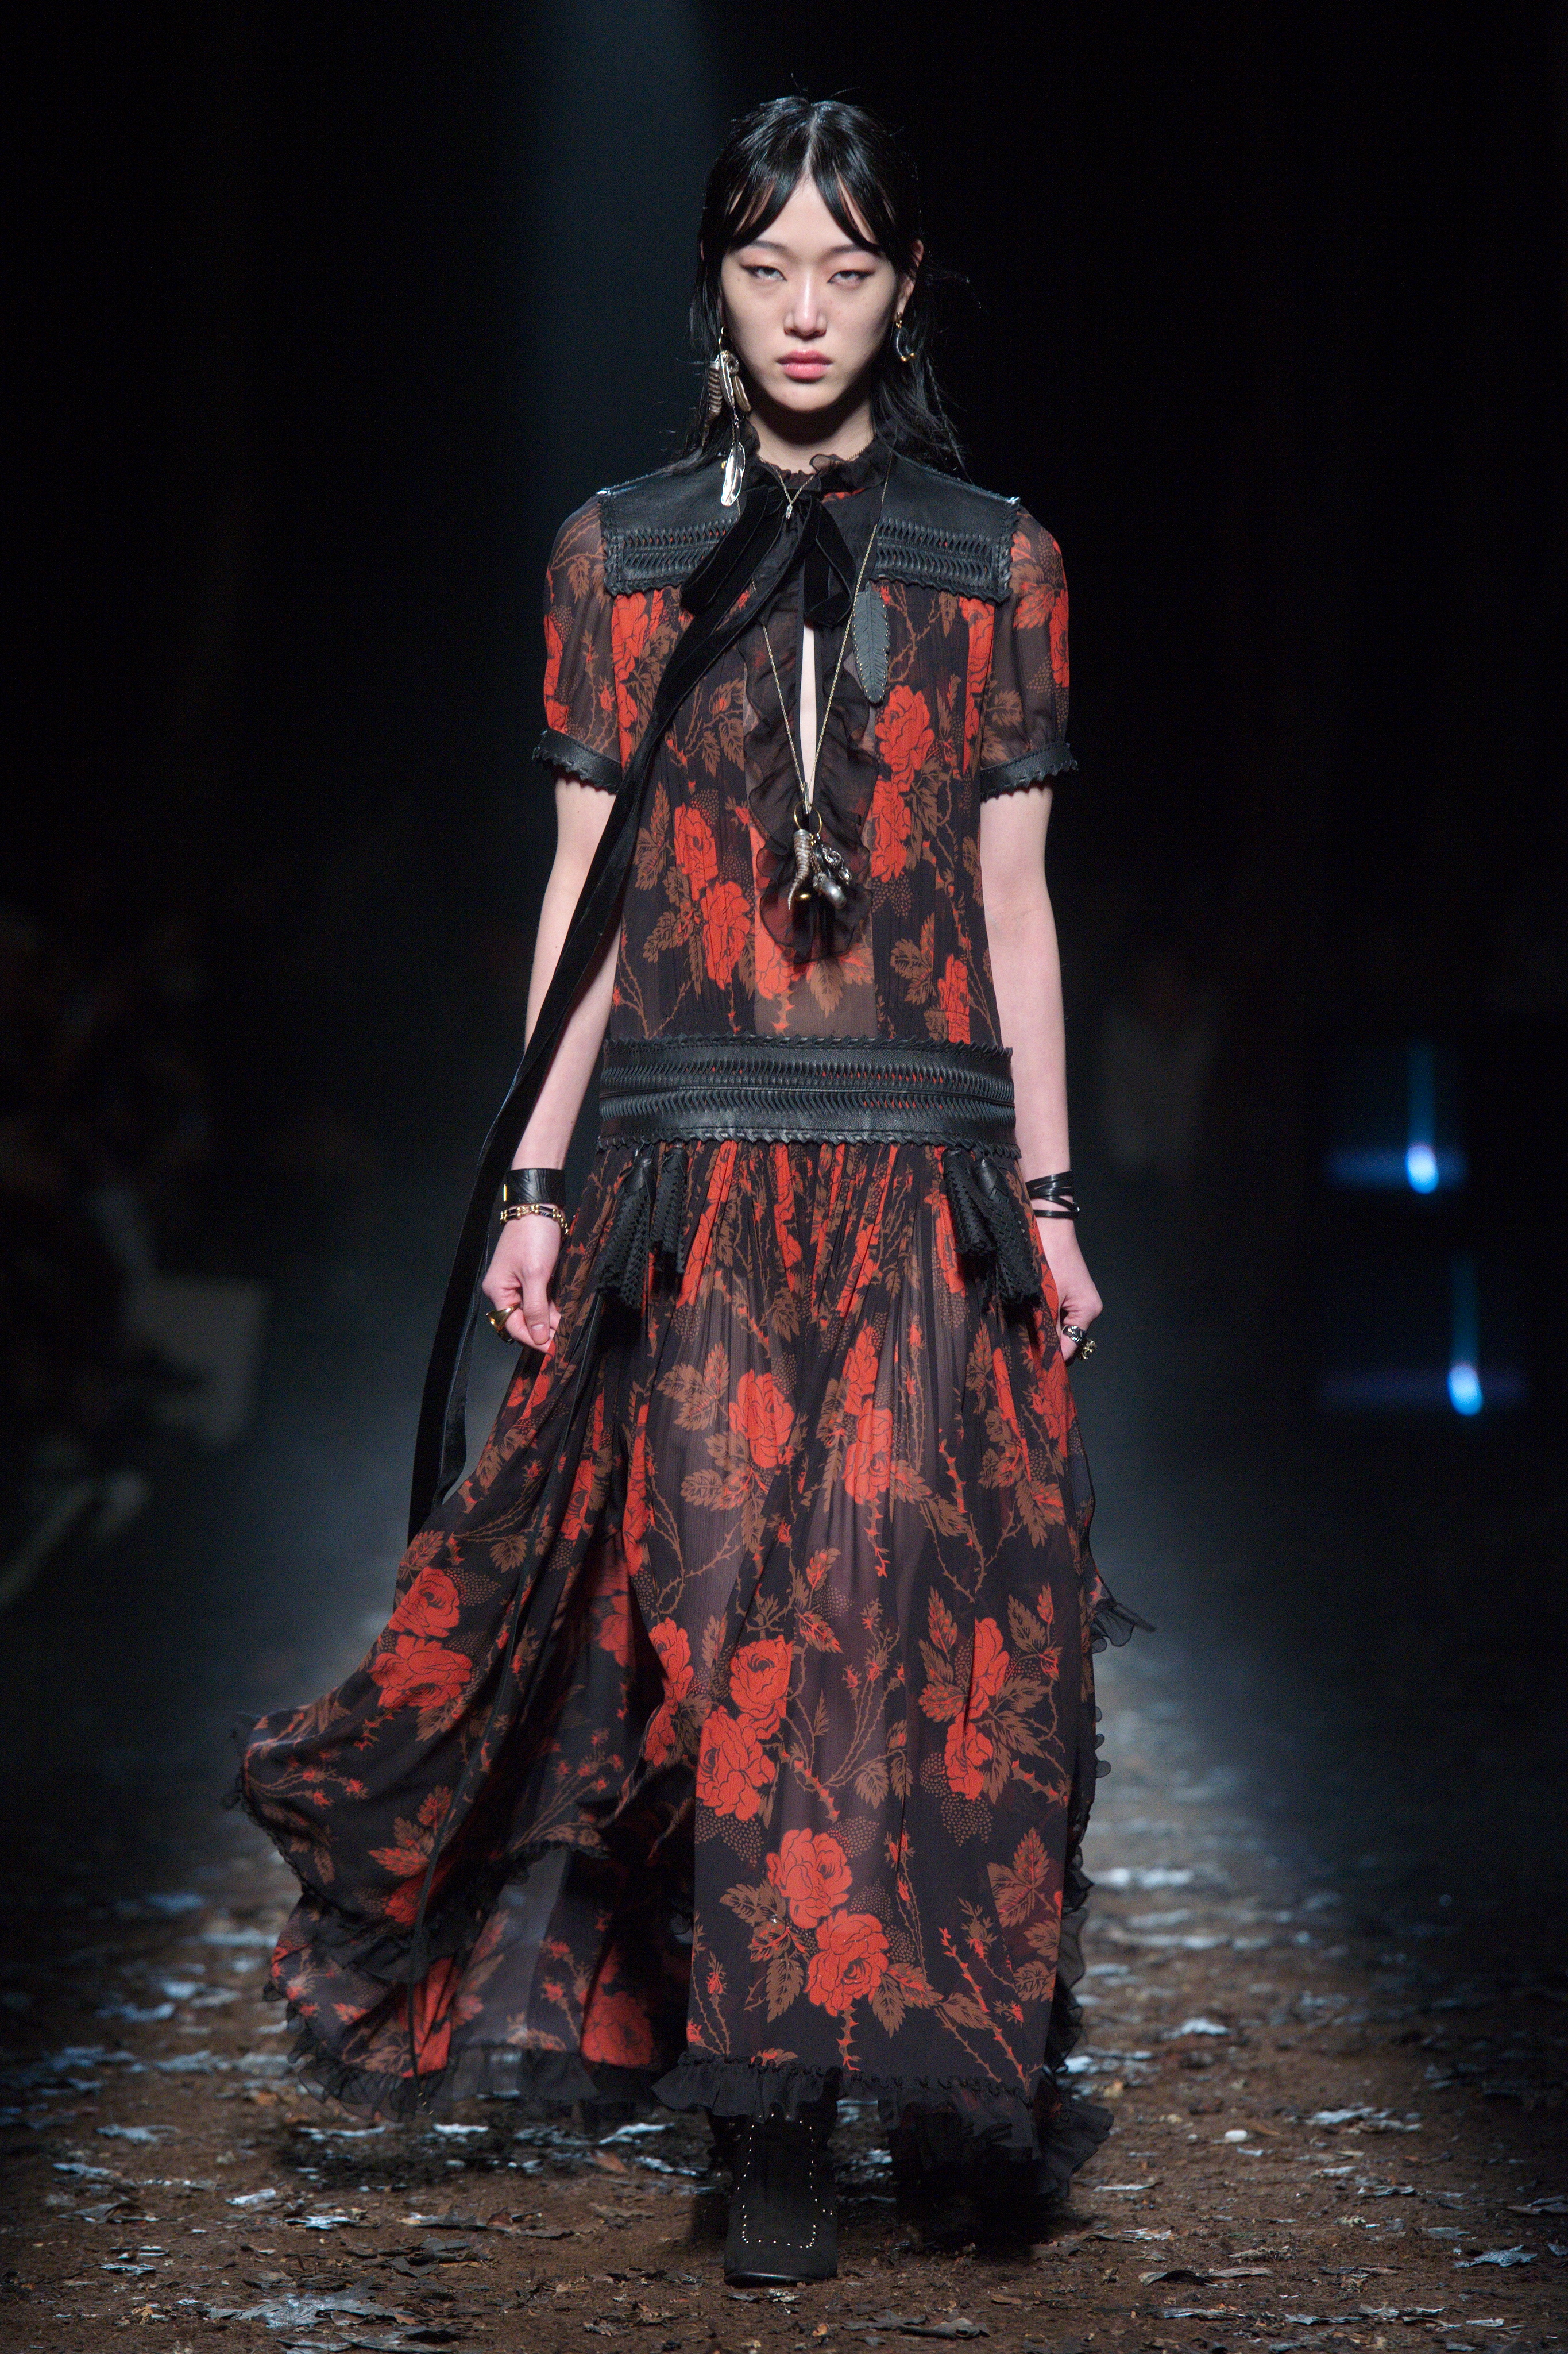 WESTERN GOTHIC SILHOUETTES AT COACH A/W 2018